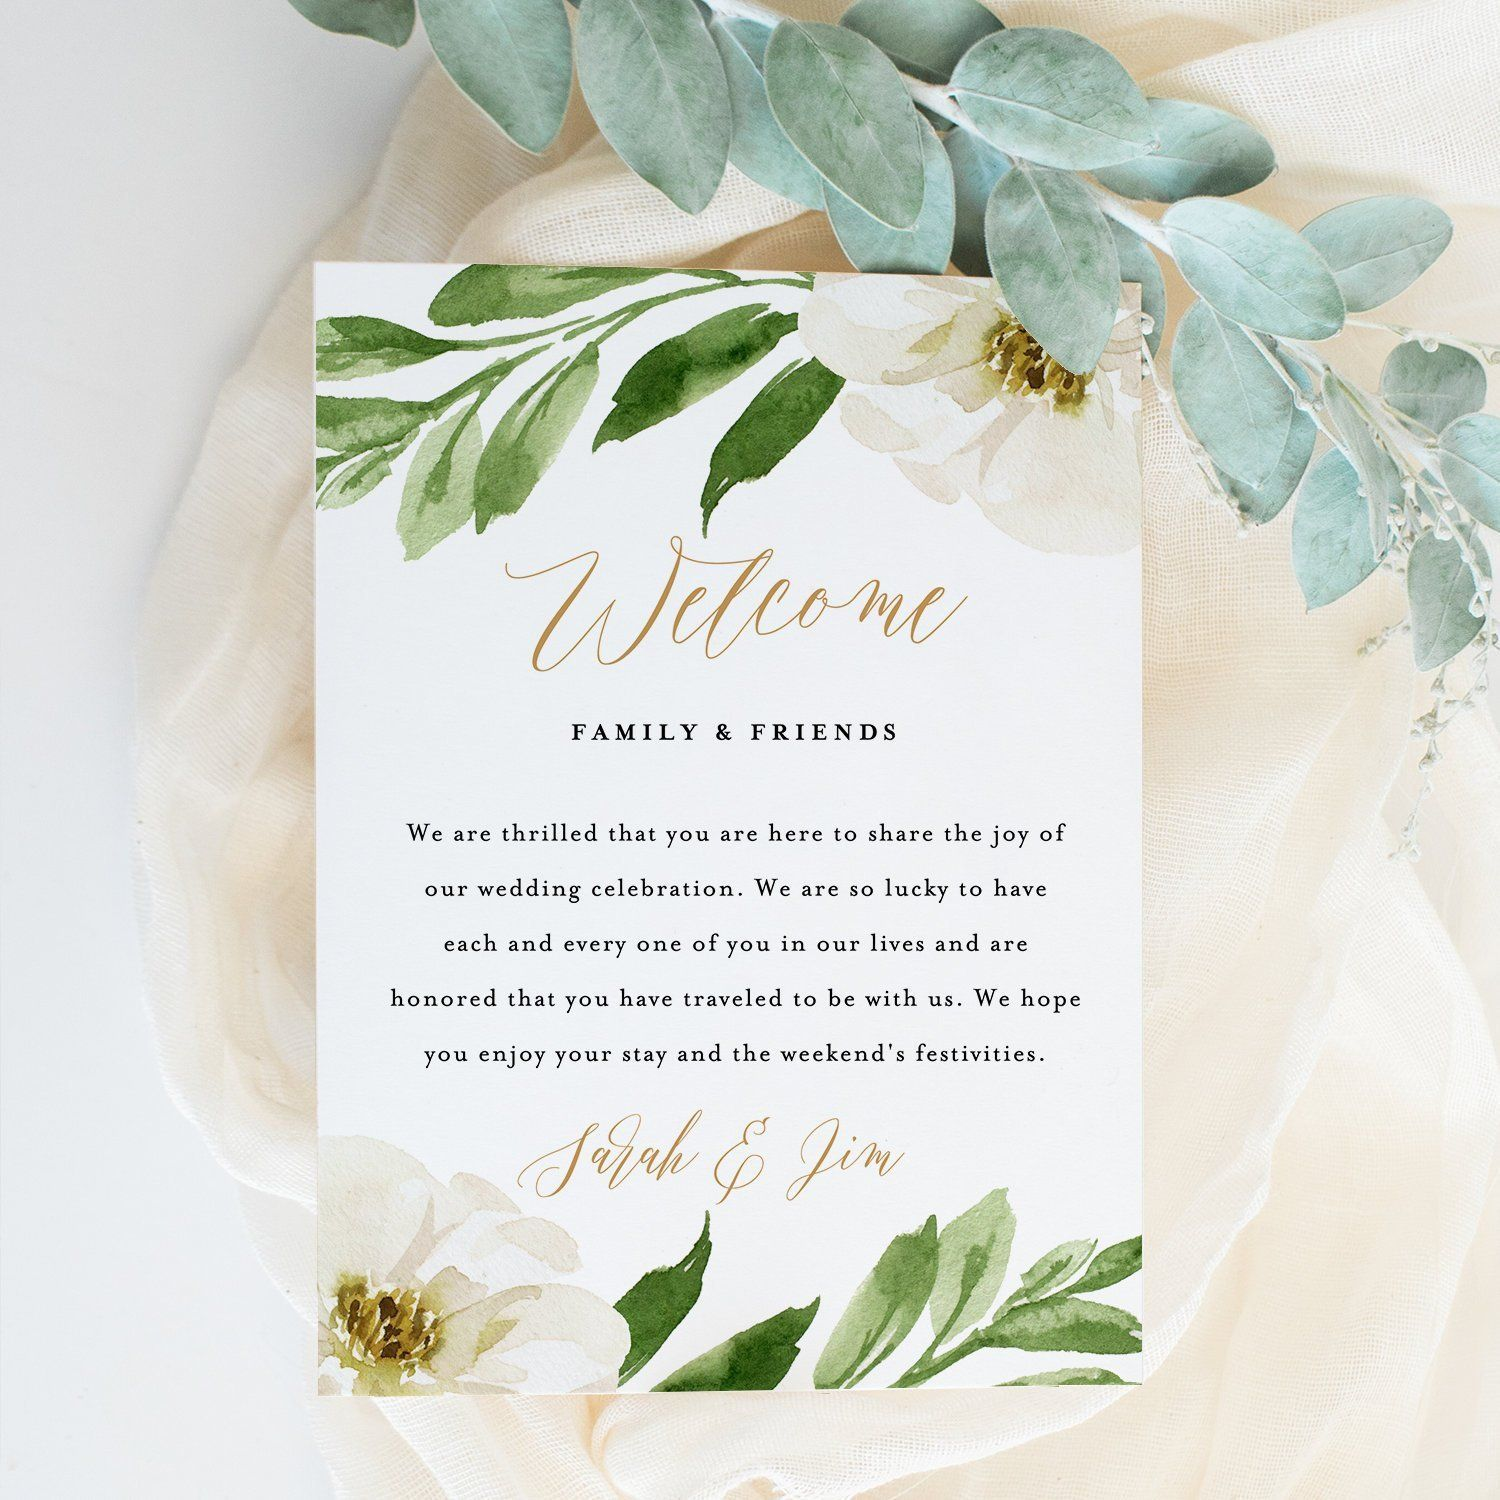 000 Surprising Wedding Welcome Letter Template Download High Definition Full